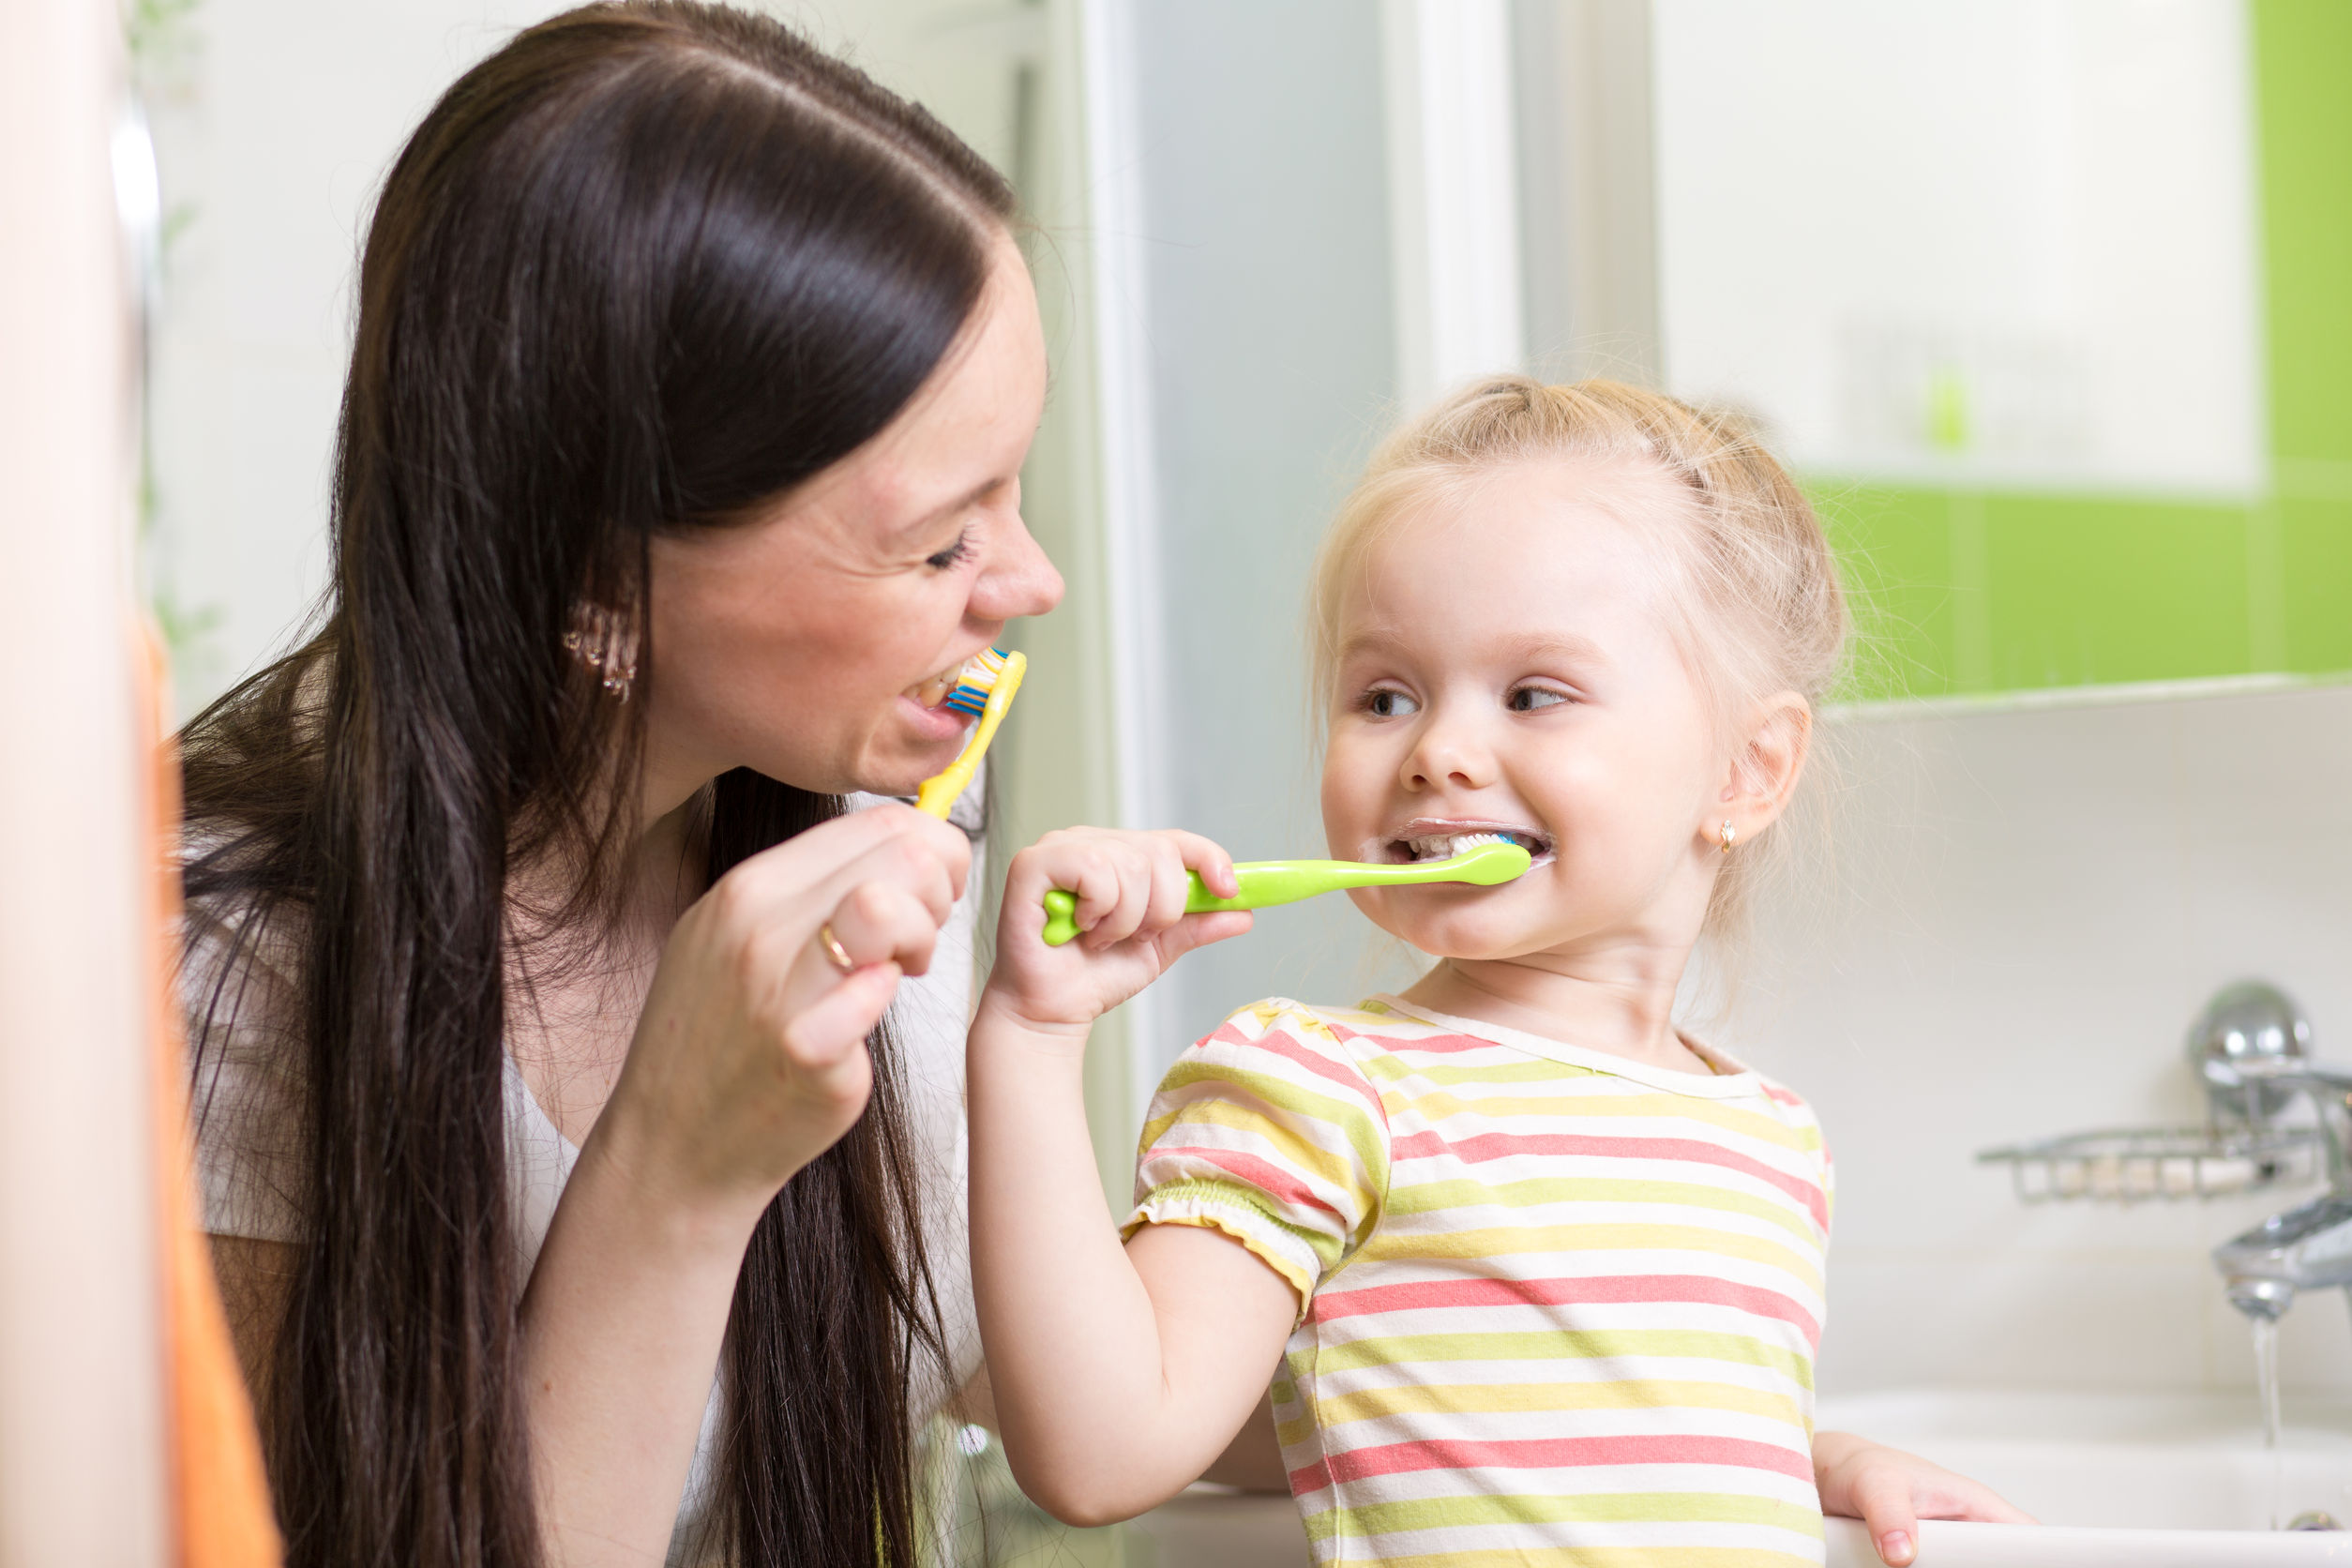 mom teaching child teeth brushing in bathroom